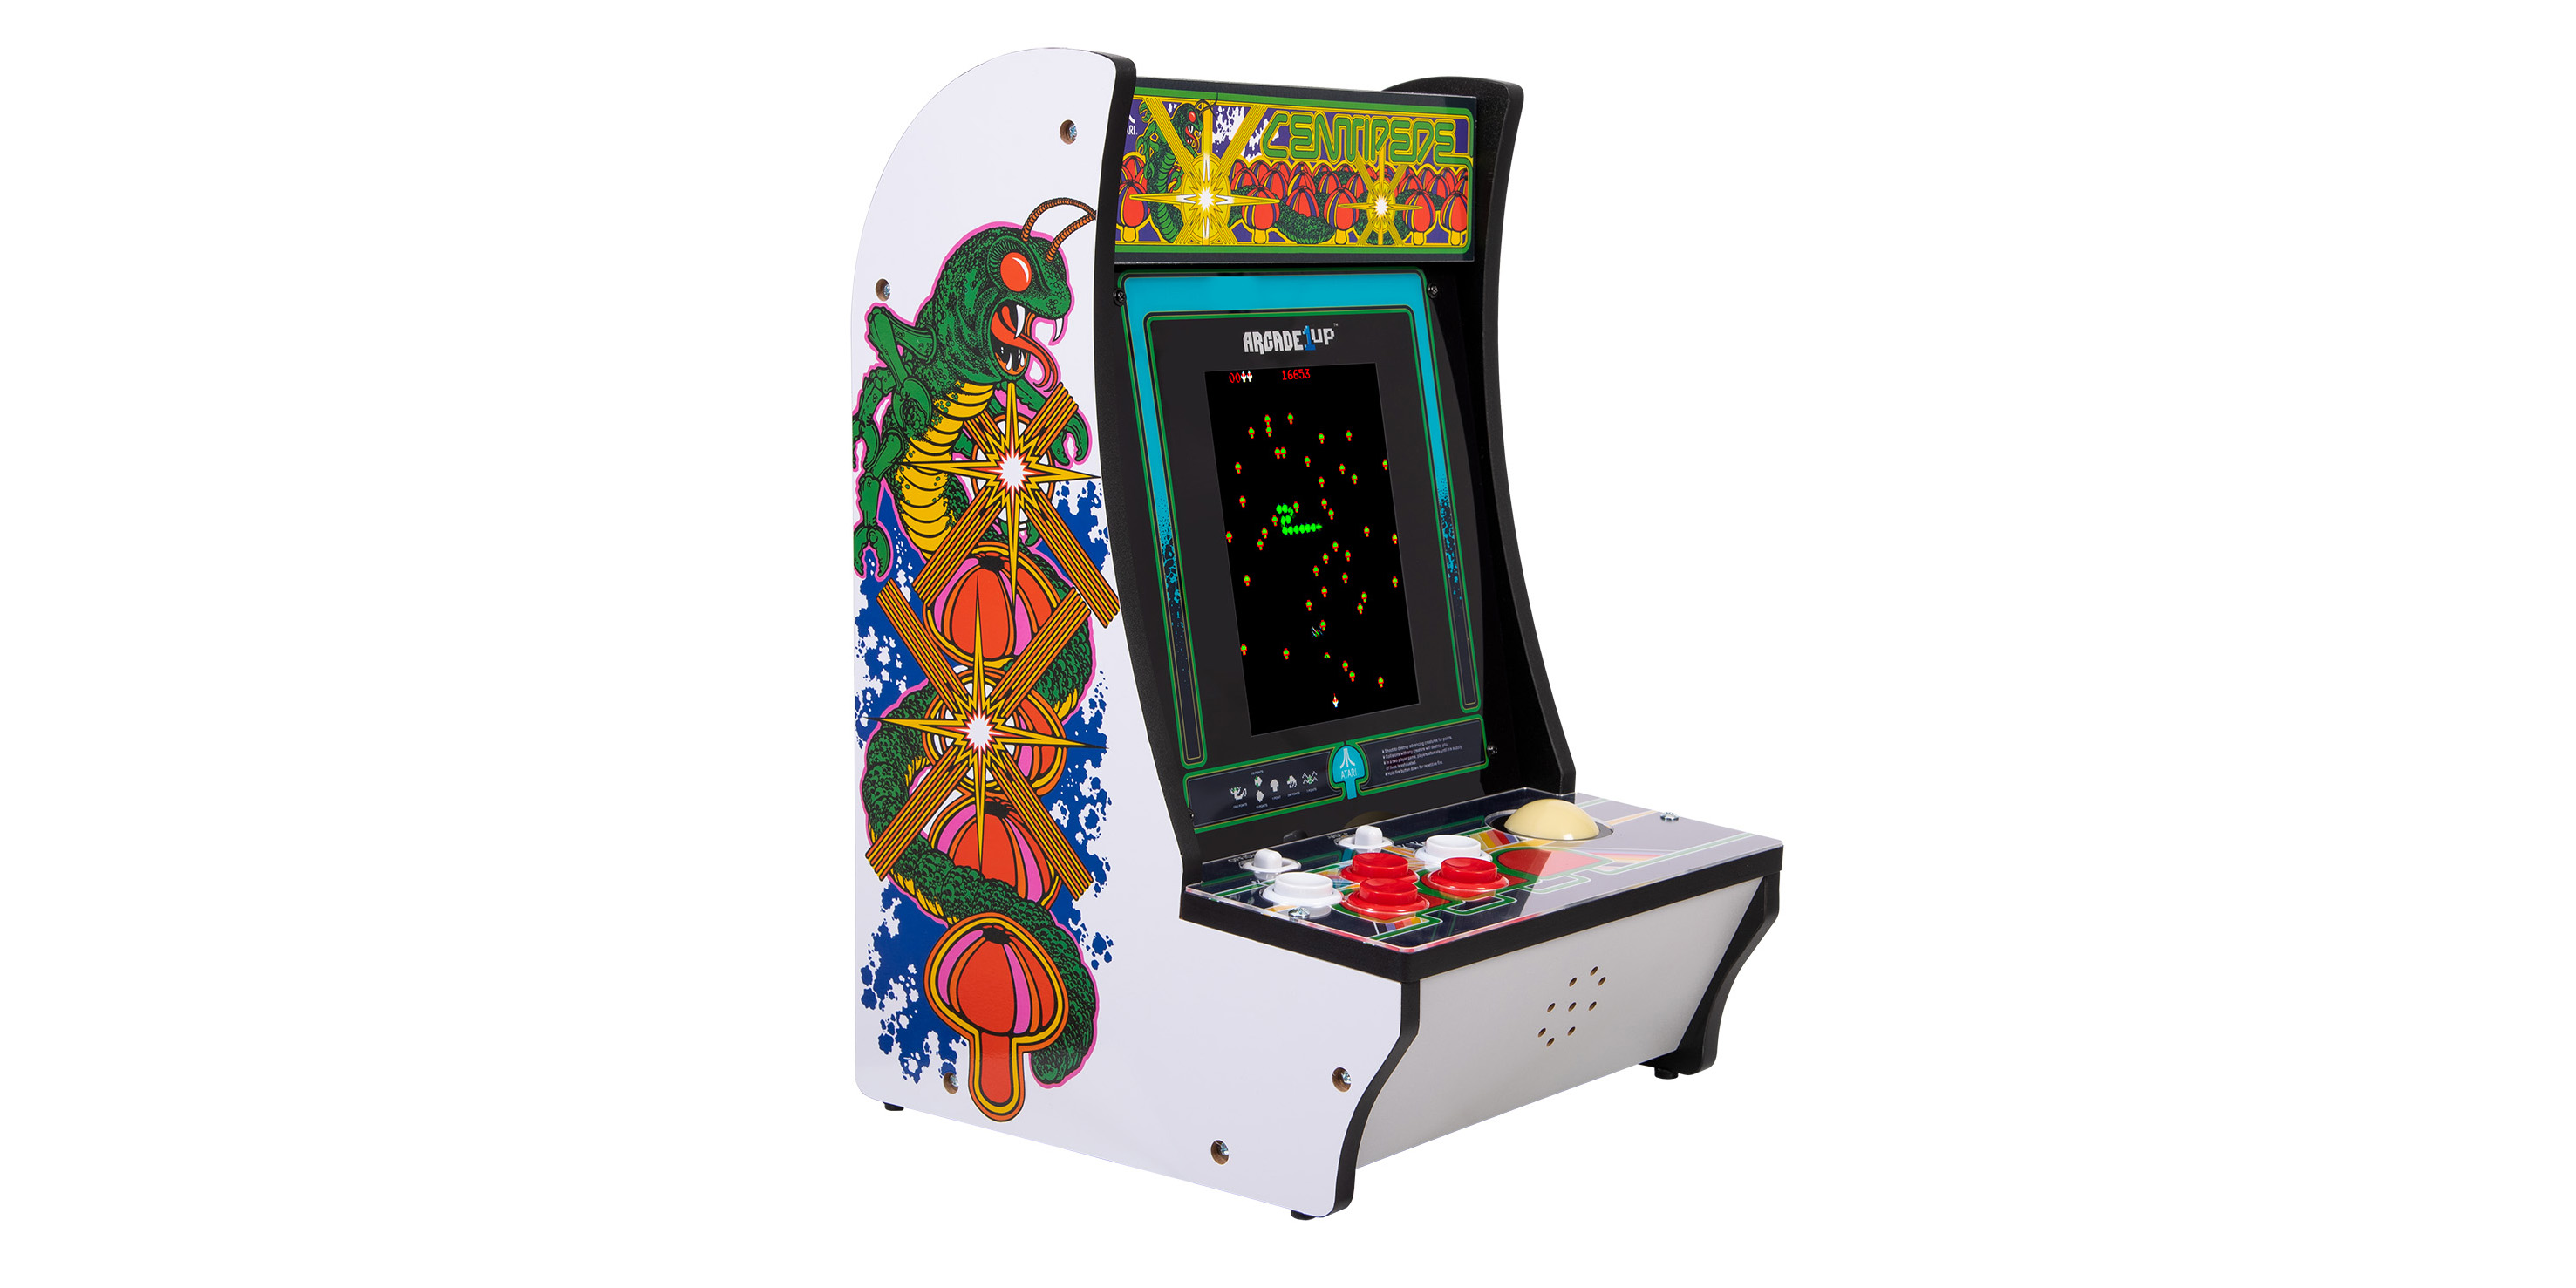 Arcade1up Counter Arcade Machines Hit New Lows At 100 50 Off 9to5toys